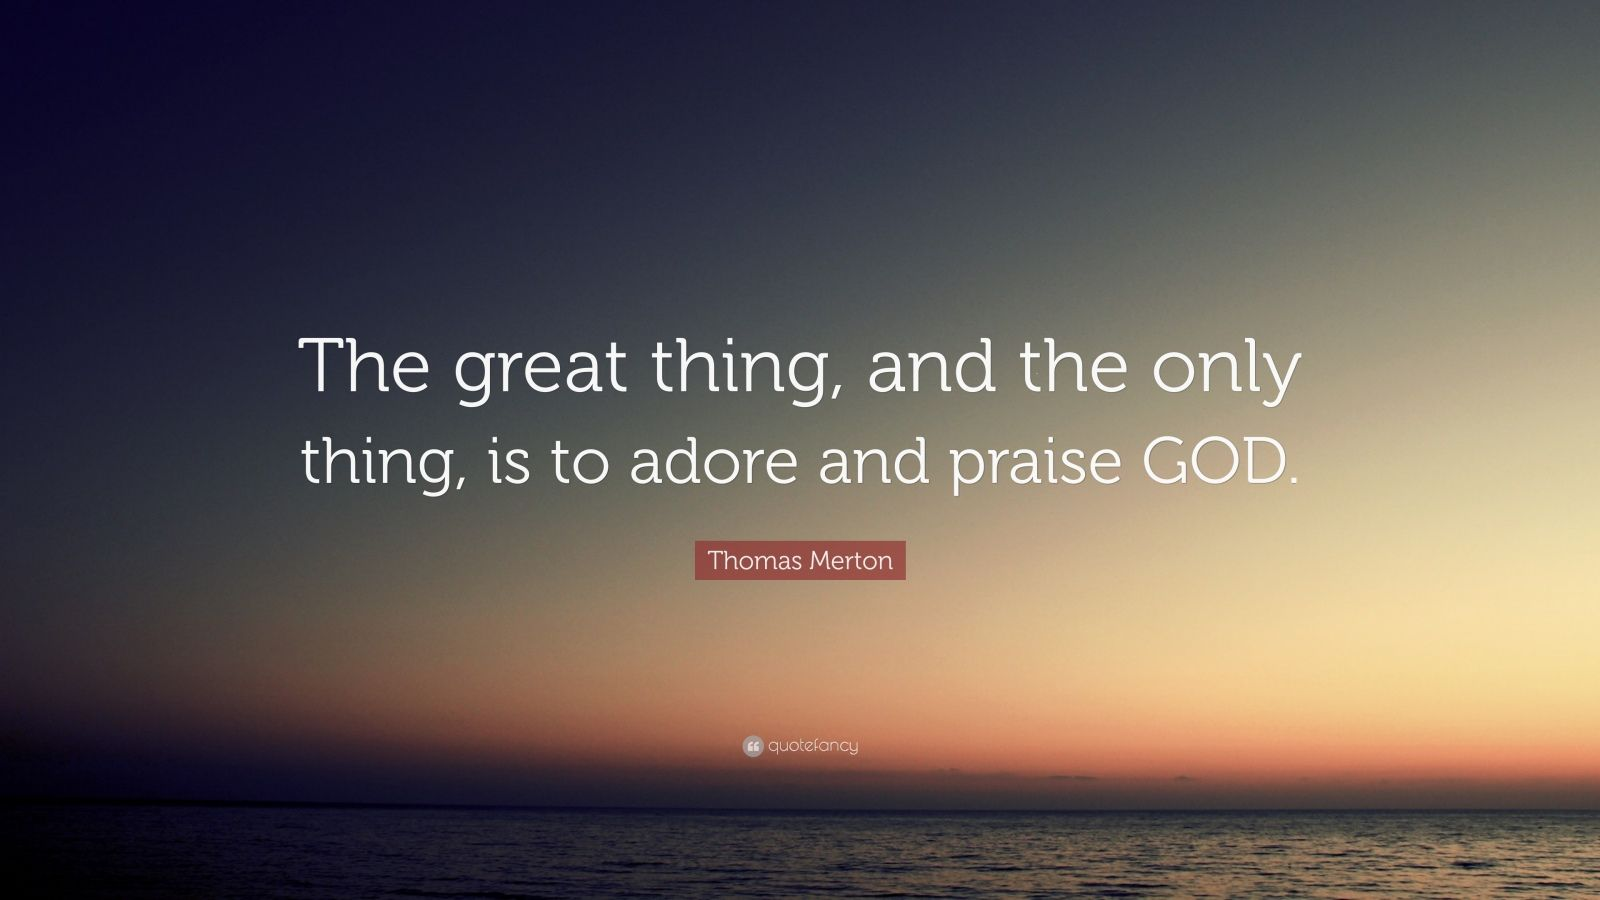 """Thomas Merton Quote: """"The great thing, and the only thing, is to adore and praise GOD."""""""